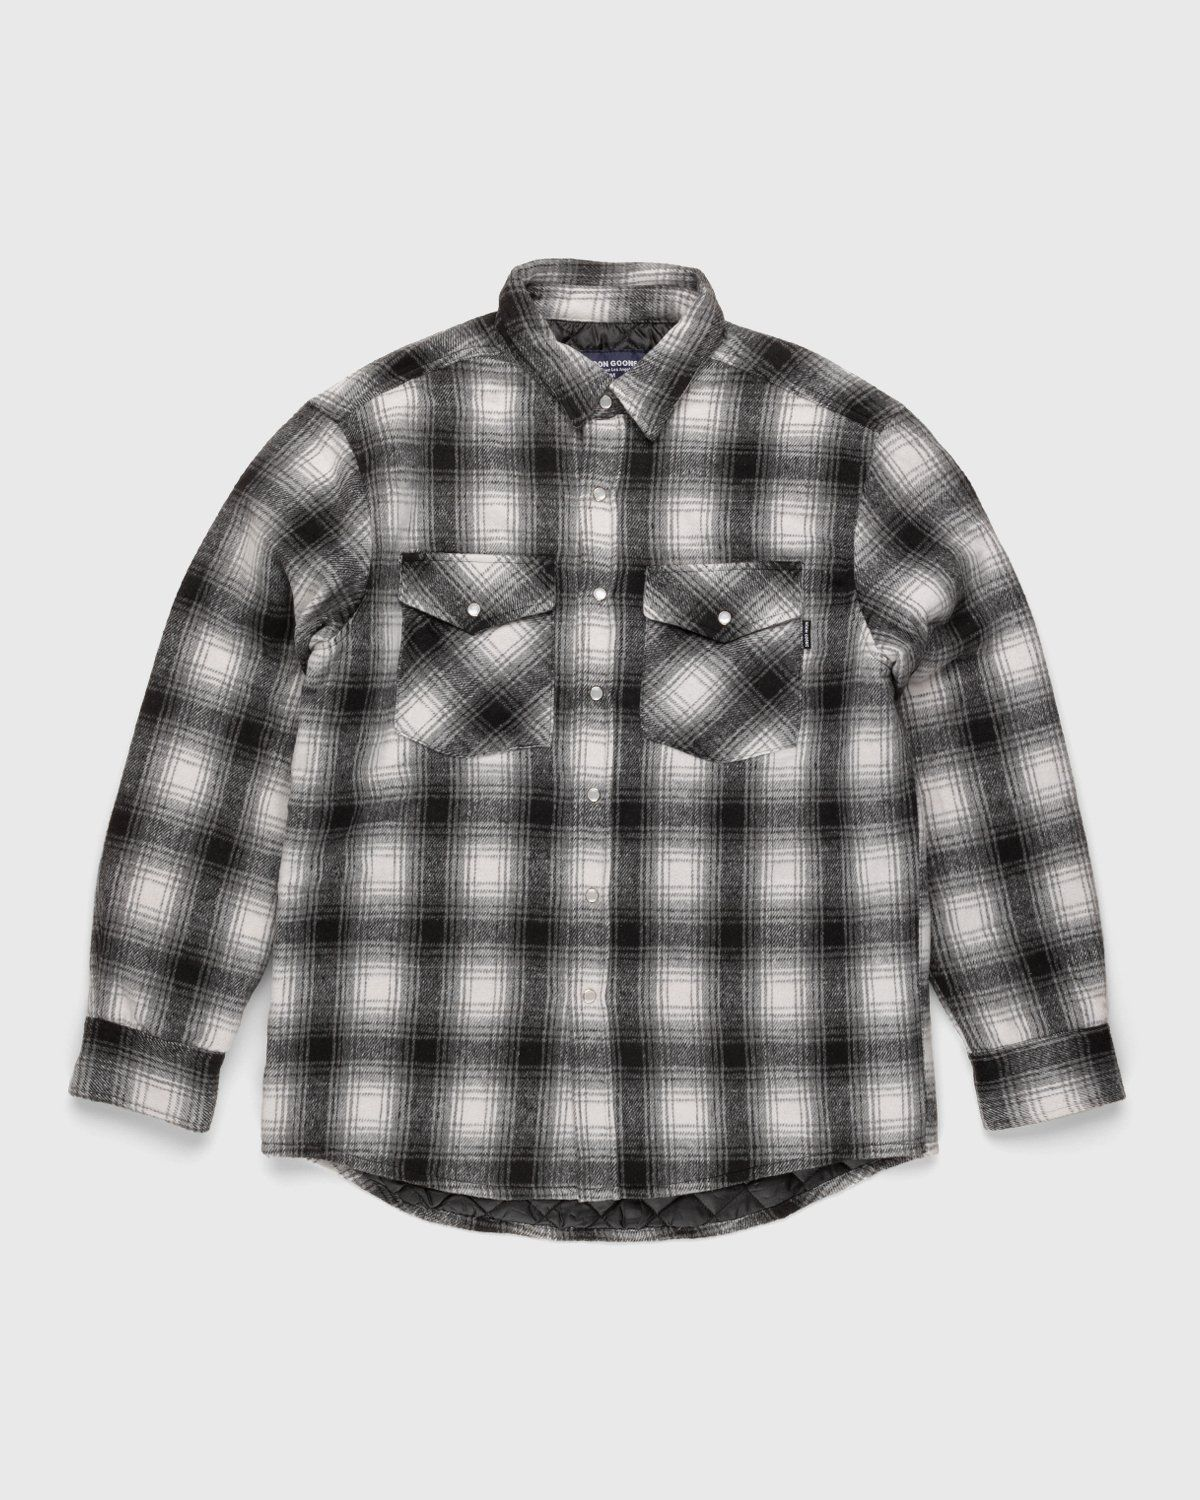 Noon Goons — Tahoe Quilted Flannel Grey - Image 1